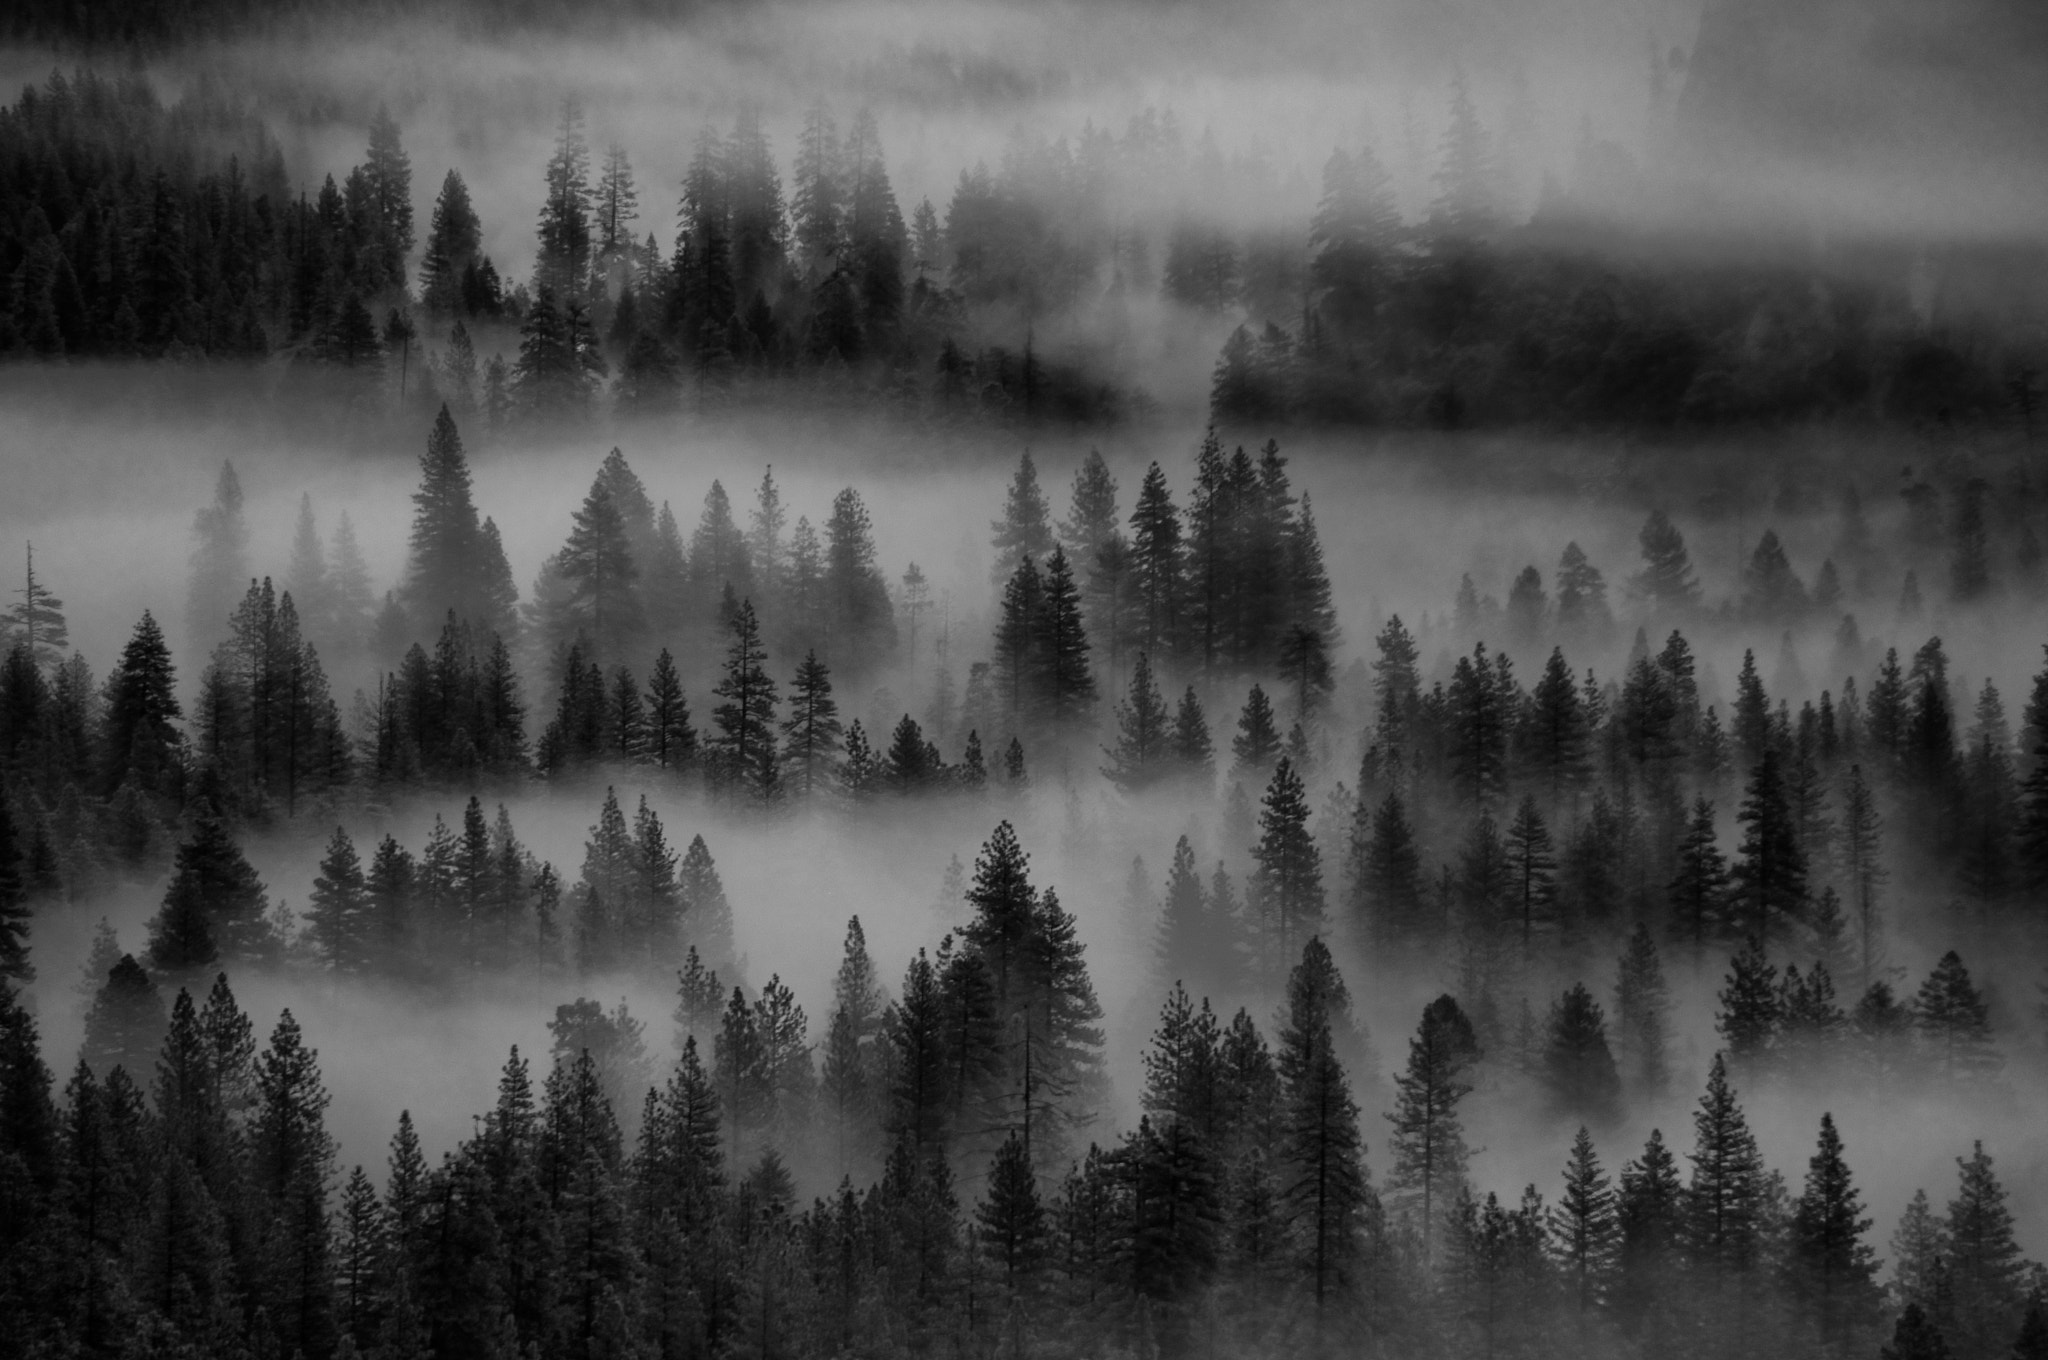 Photograph Misty Morning by Michael White on 500px